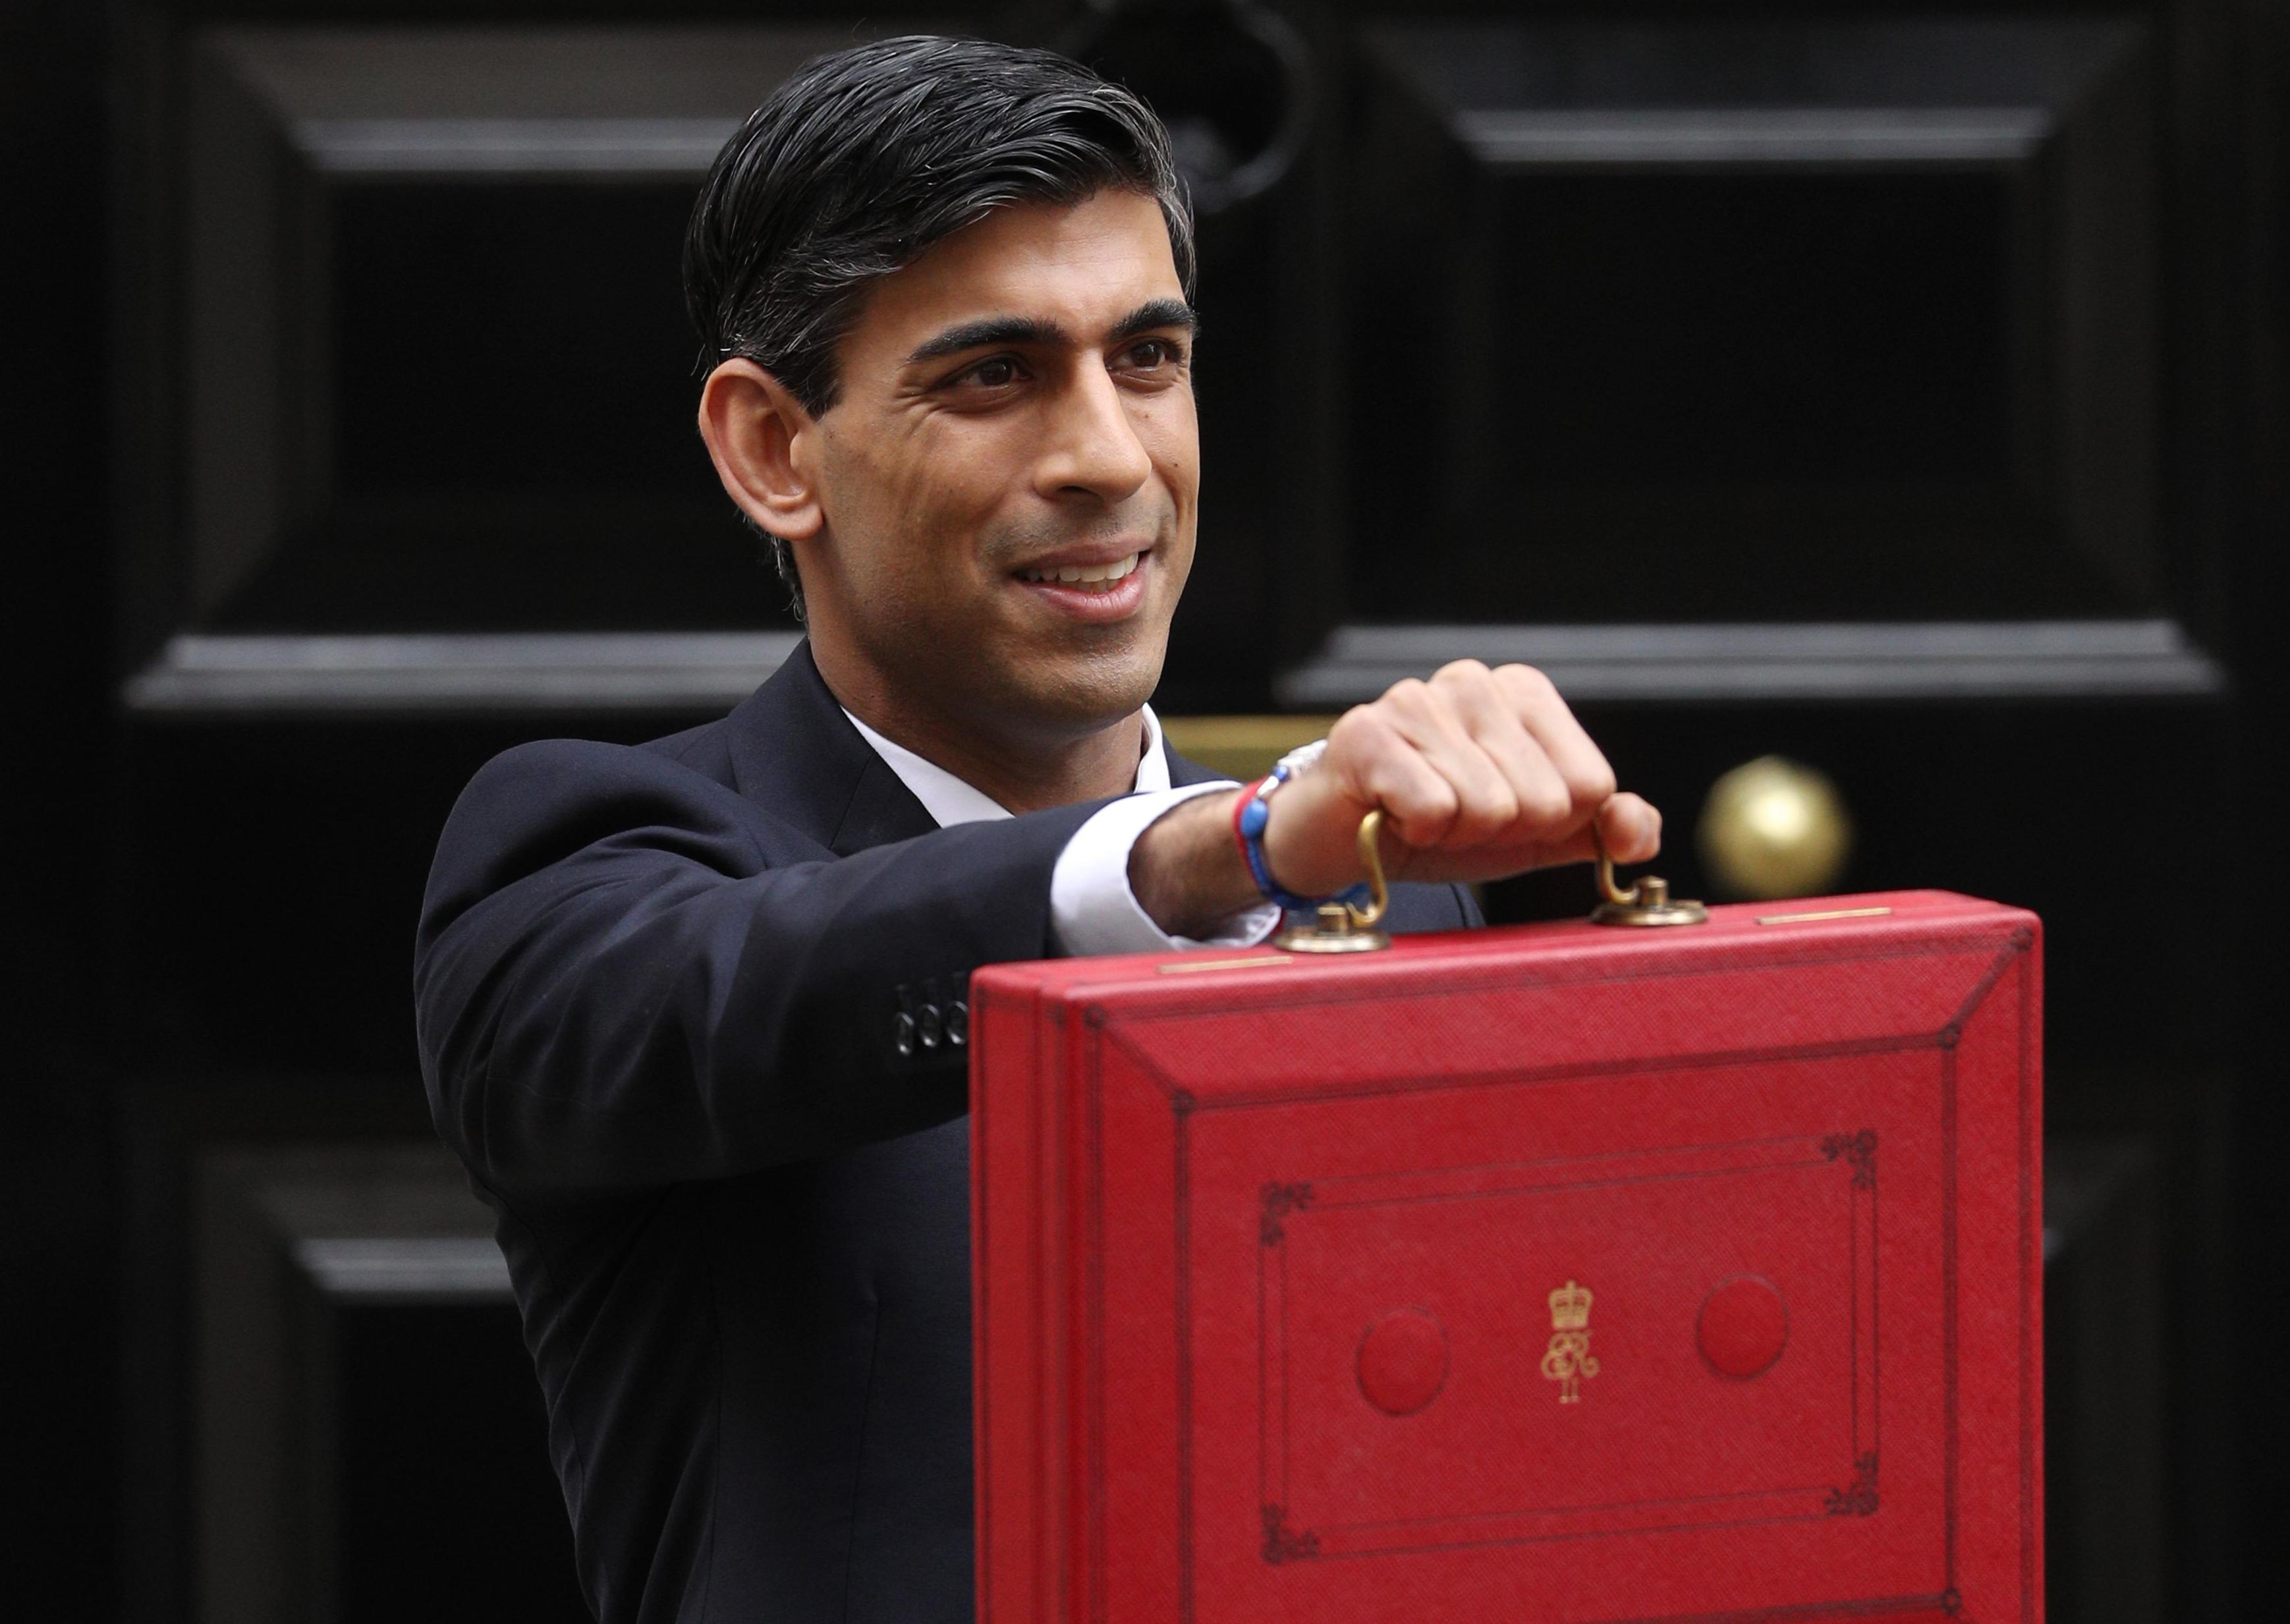 How UK Budget did not put an end to Tory austerity – Ian Swanson